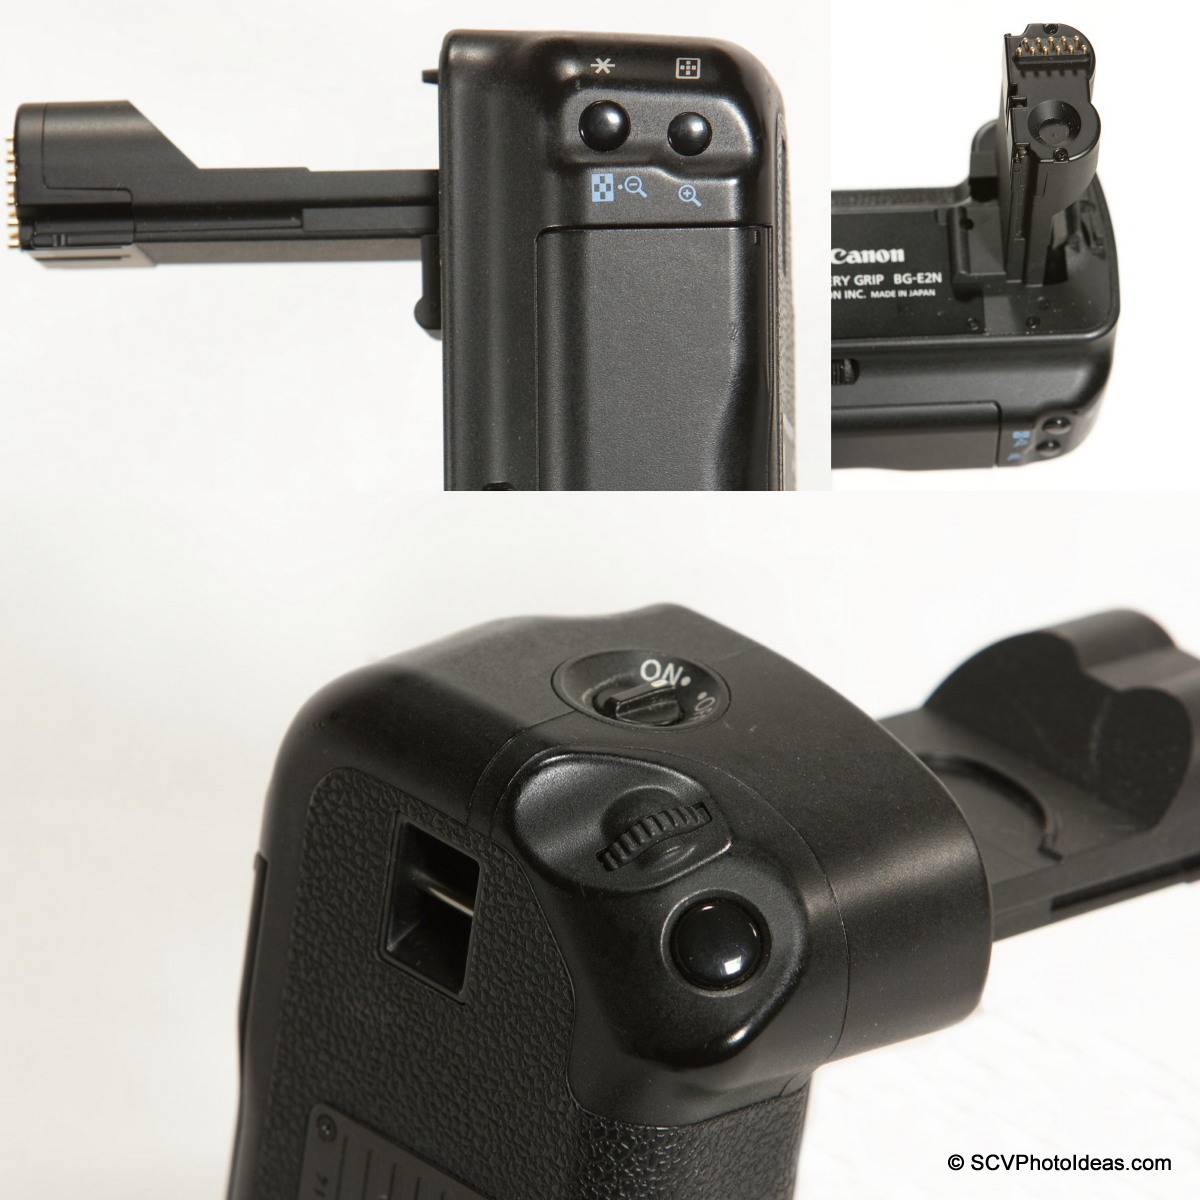 Canon BG-E2N Battery Grip extra controls